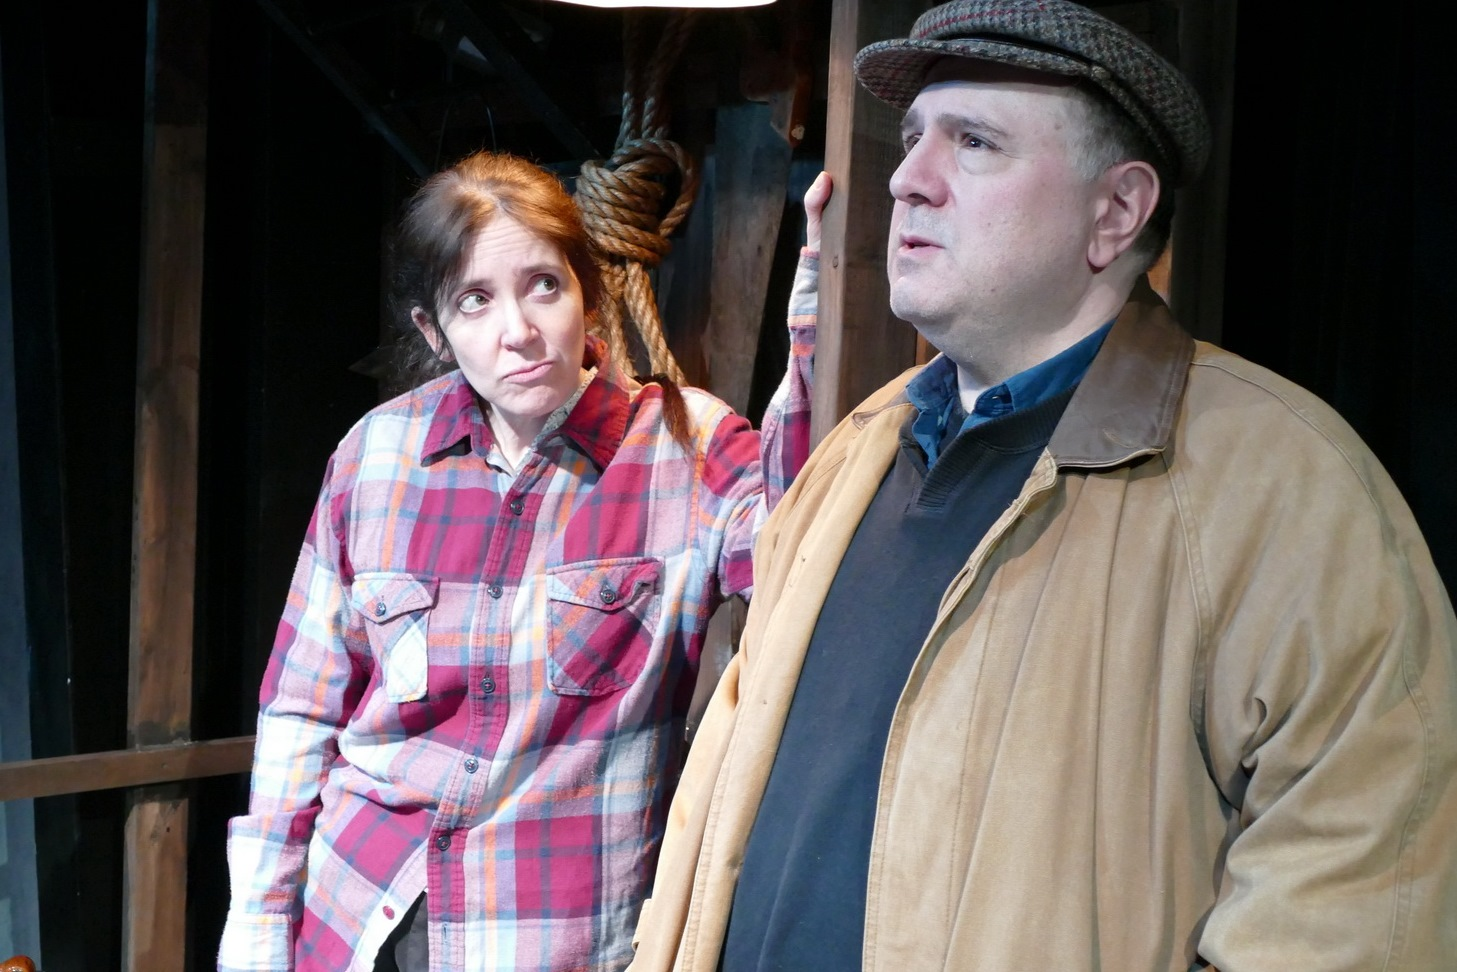 Cat R. Kenney as Rosemary Muldoon and Chris D'Amico as Anthony Reilly